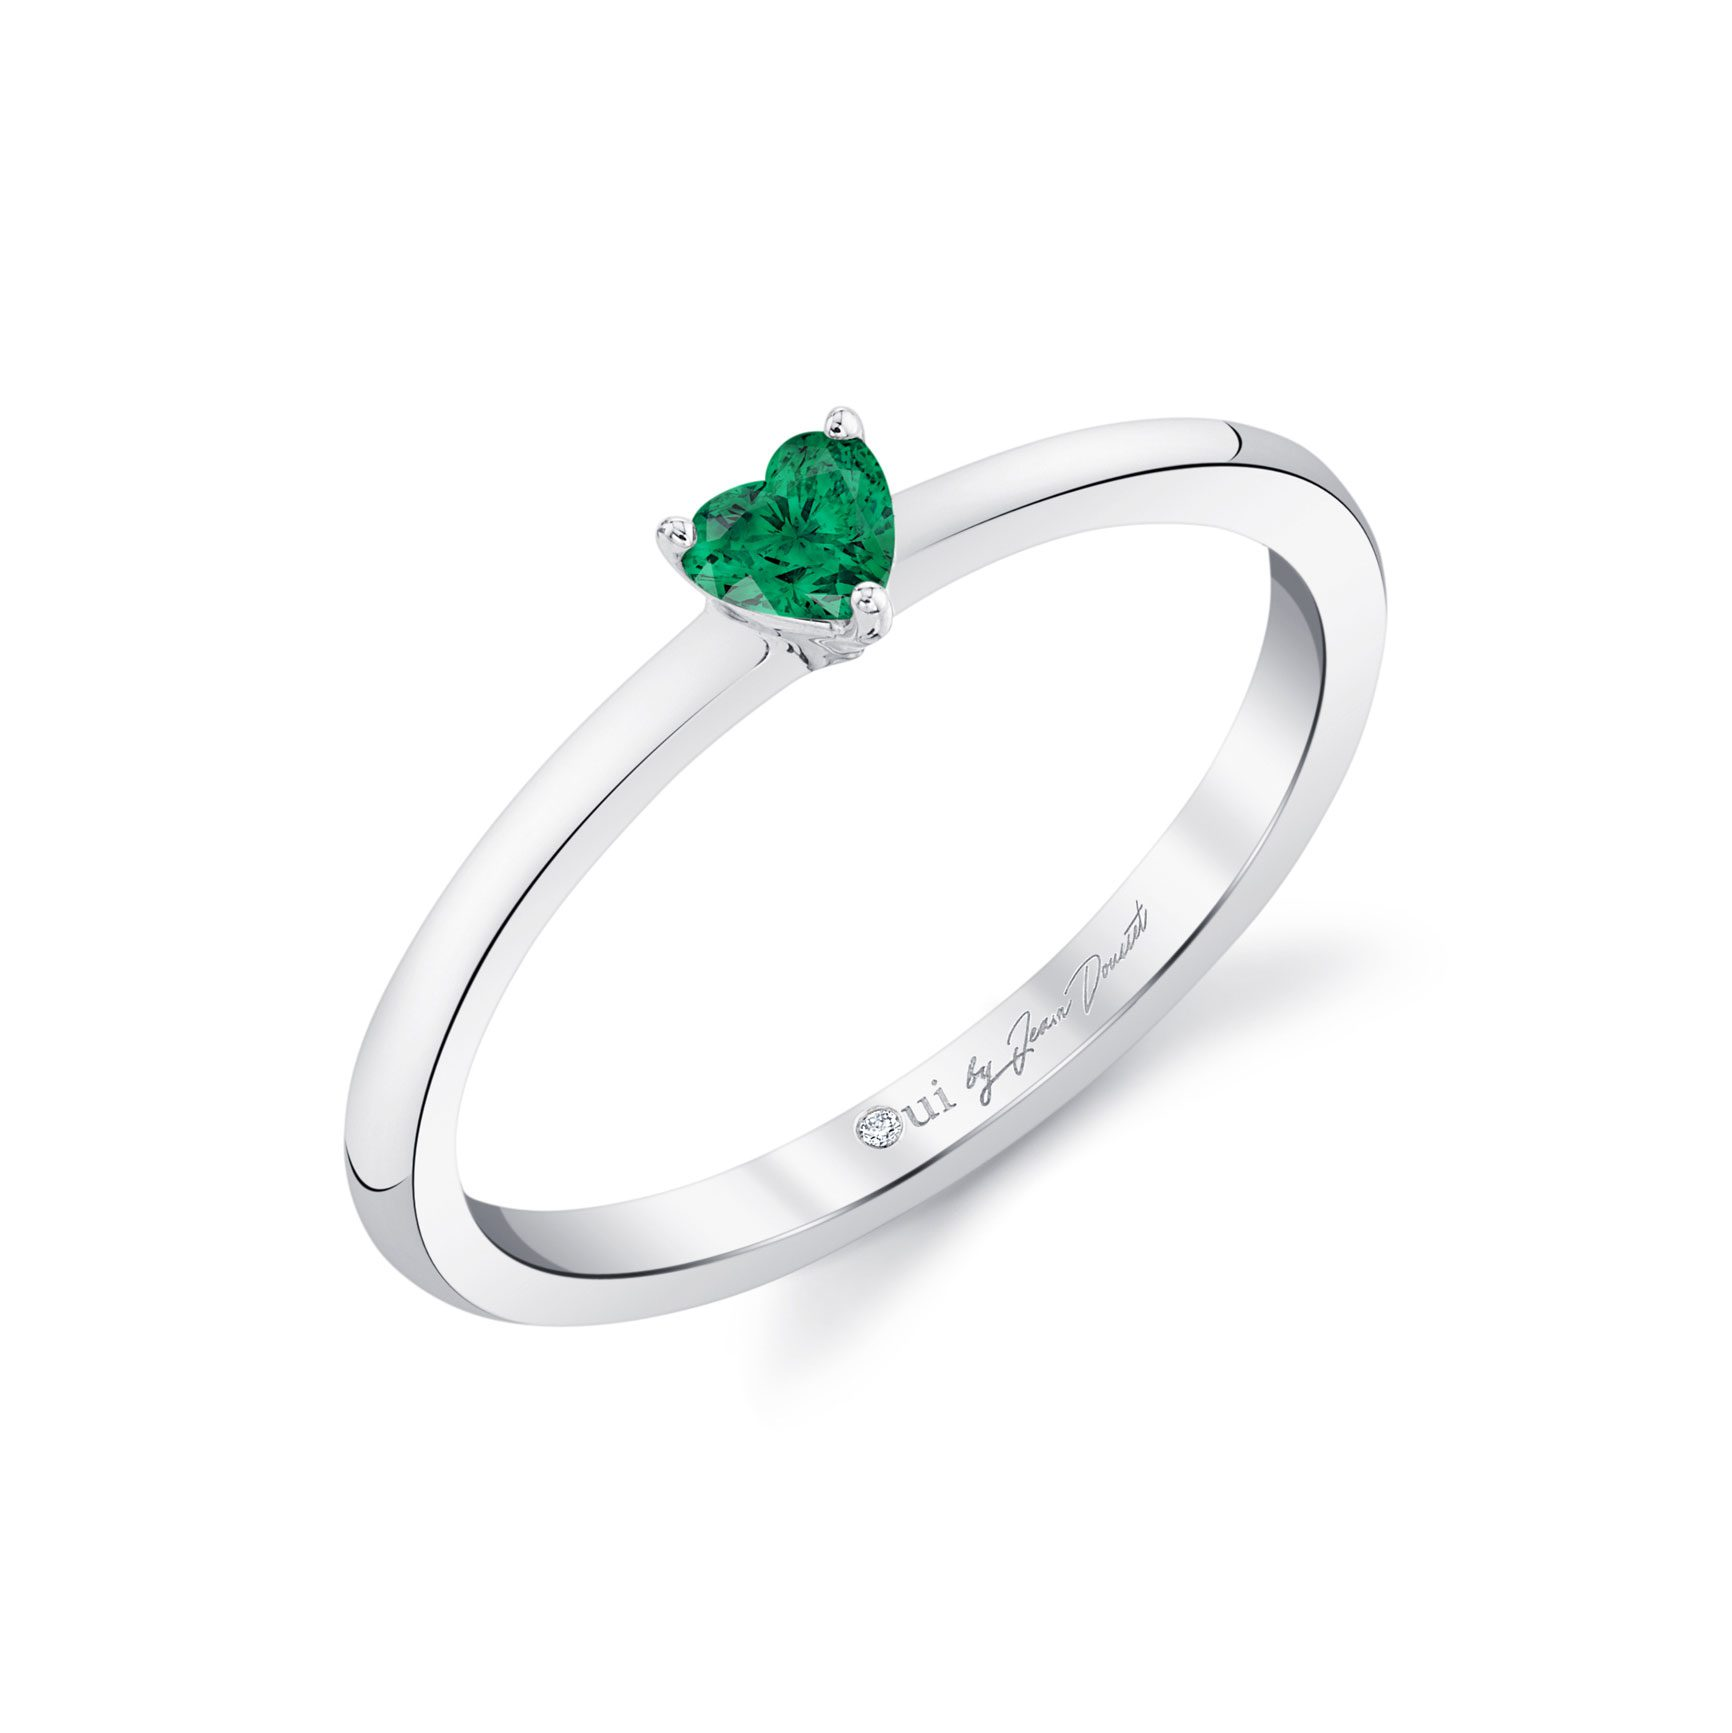 La Petite Heart Emerald Ring in 18k White Gold Profile View by Oui by Jean Dousset